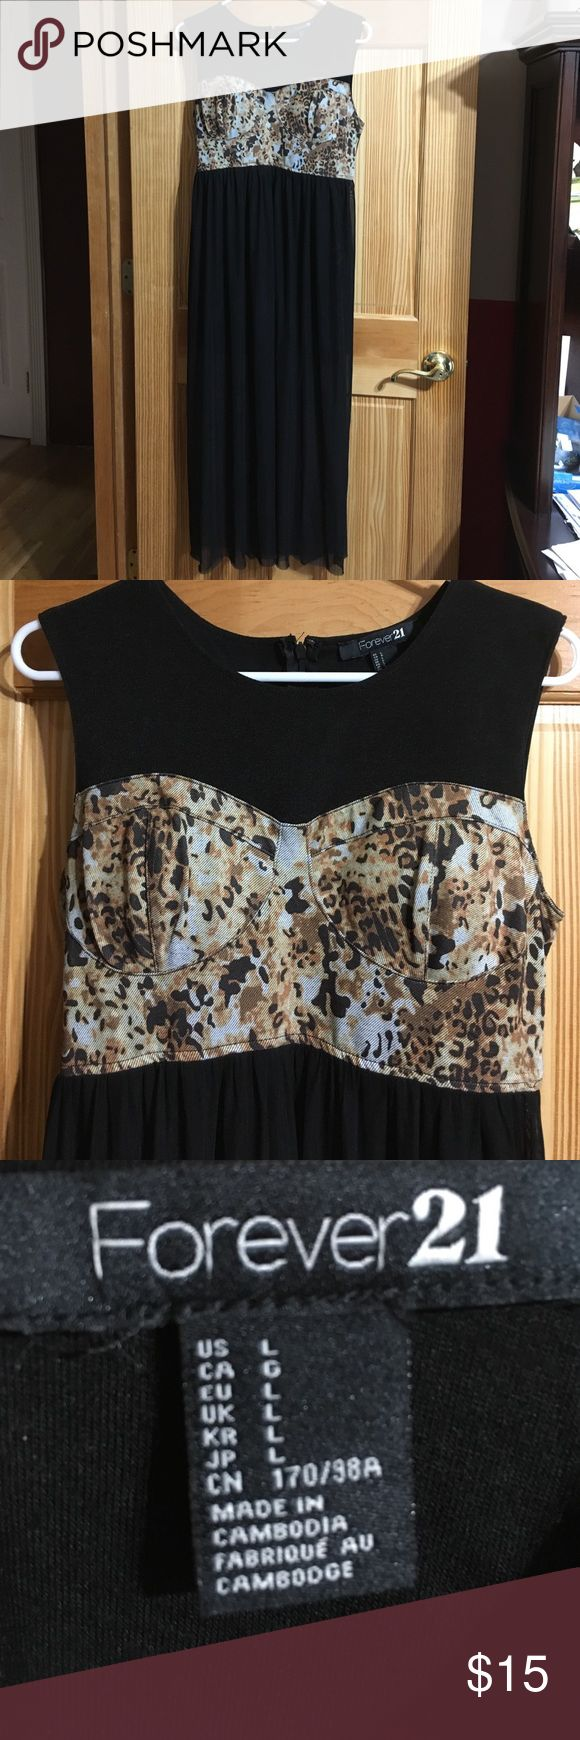 FOREVER 21 Cheetah Dress Padded cups, zipper on back, back is all black, the dress is above the knee with a black sheer overlay to the ankles, sleeveless And elastic waistband Forever 21 Dresses